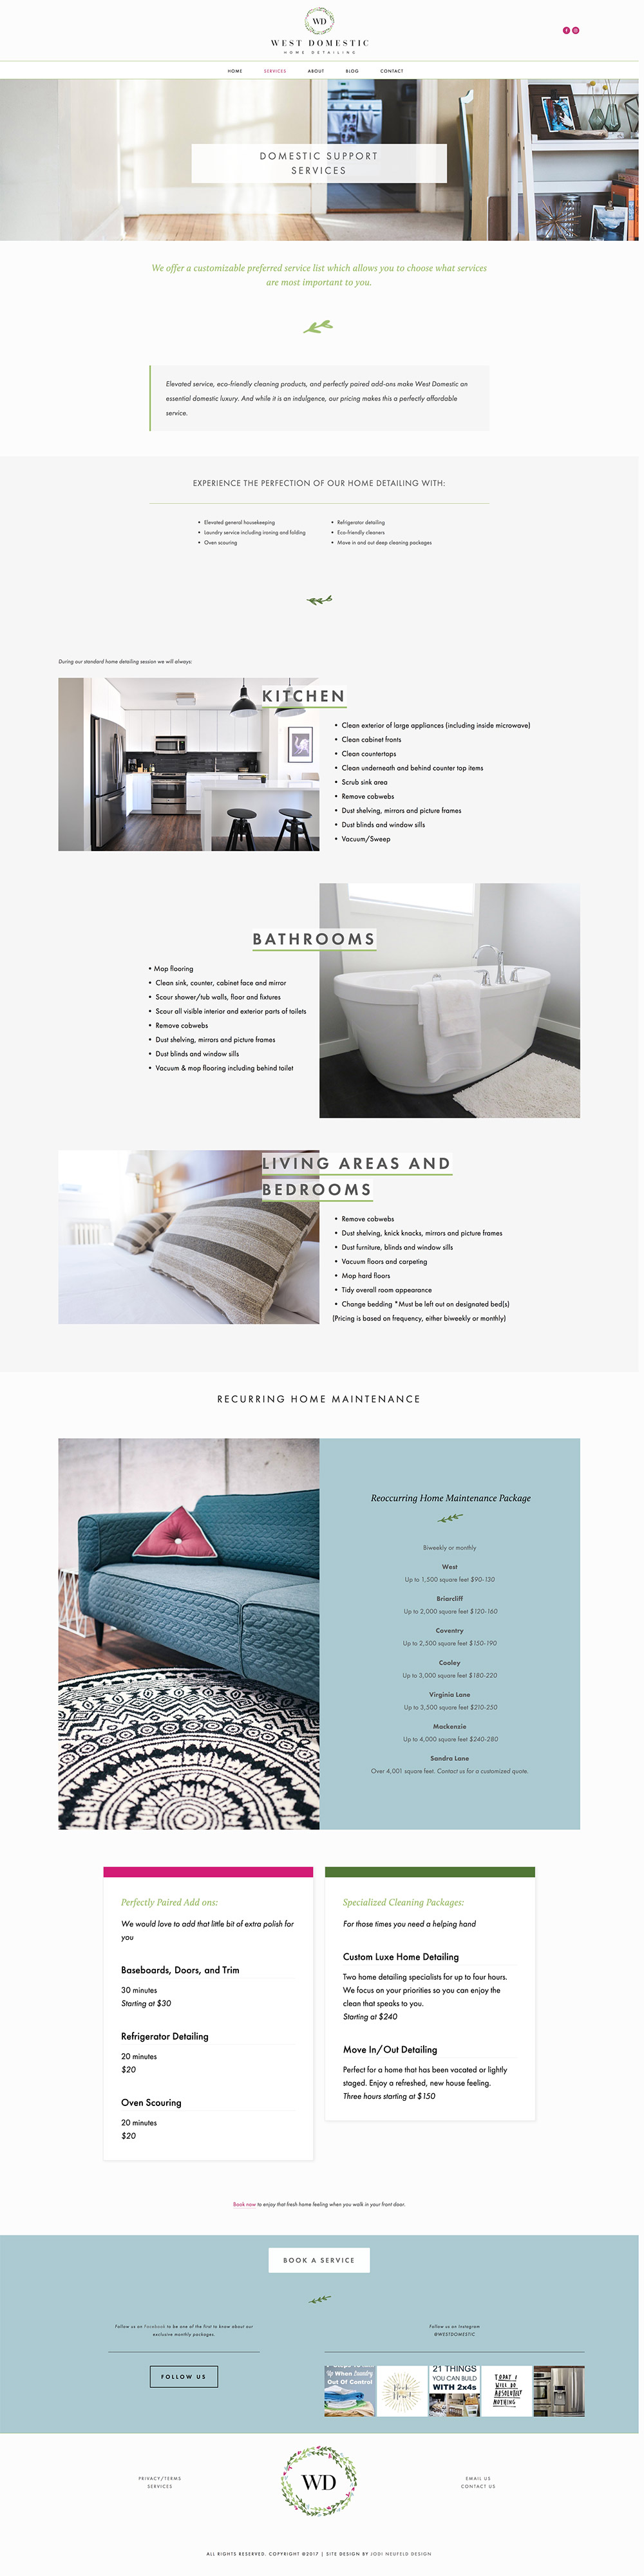 West Domestic | Services page | Squarespace webdesign by Jodi Neufeld Design